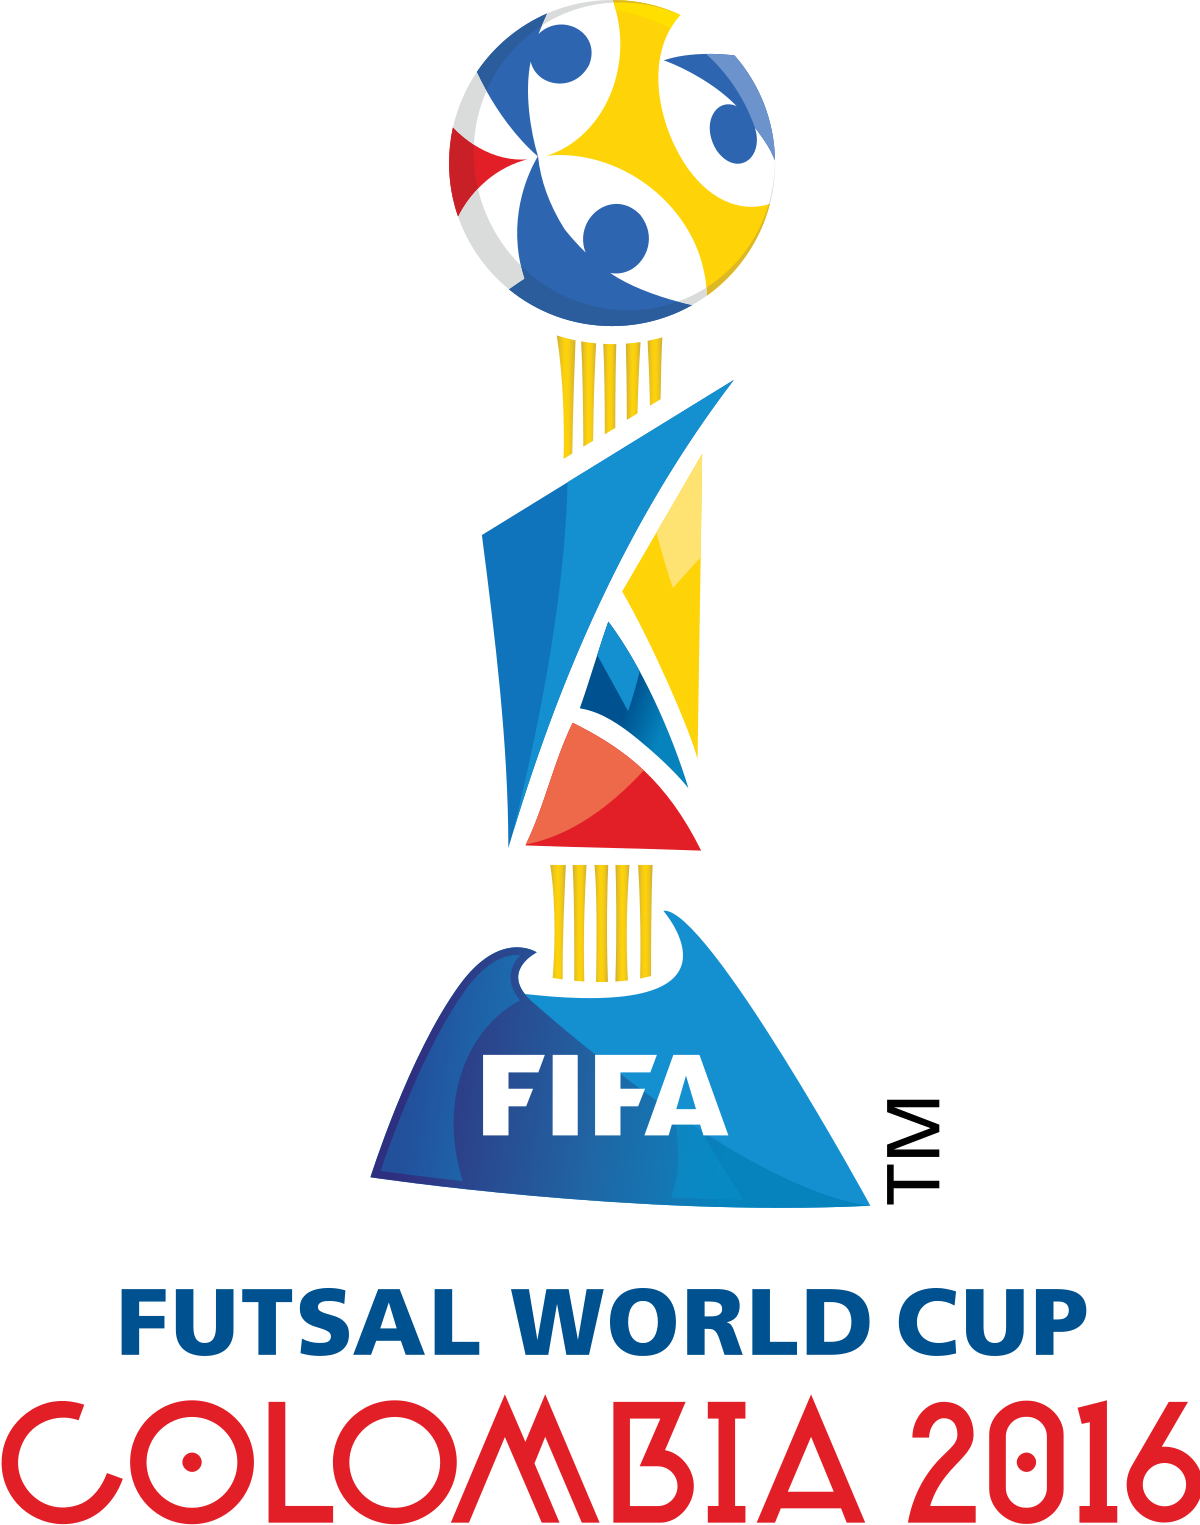 2016 FIFA Futsal World Cup.